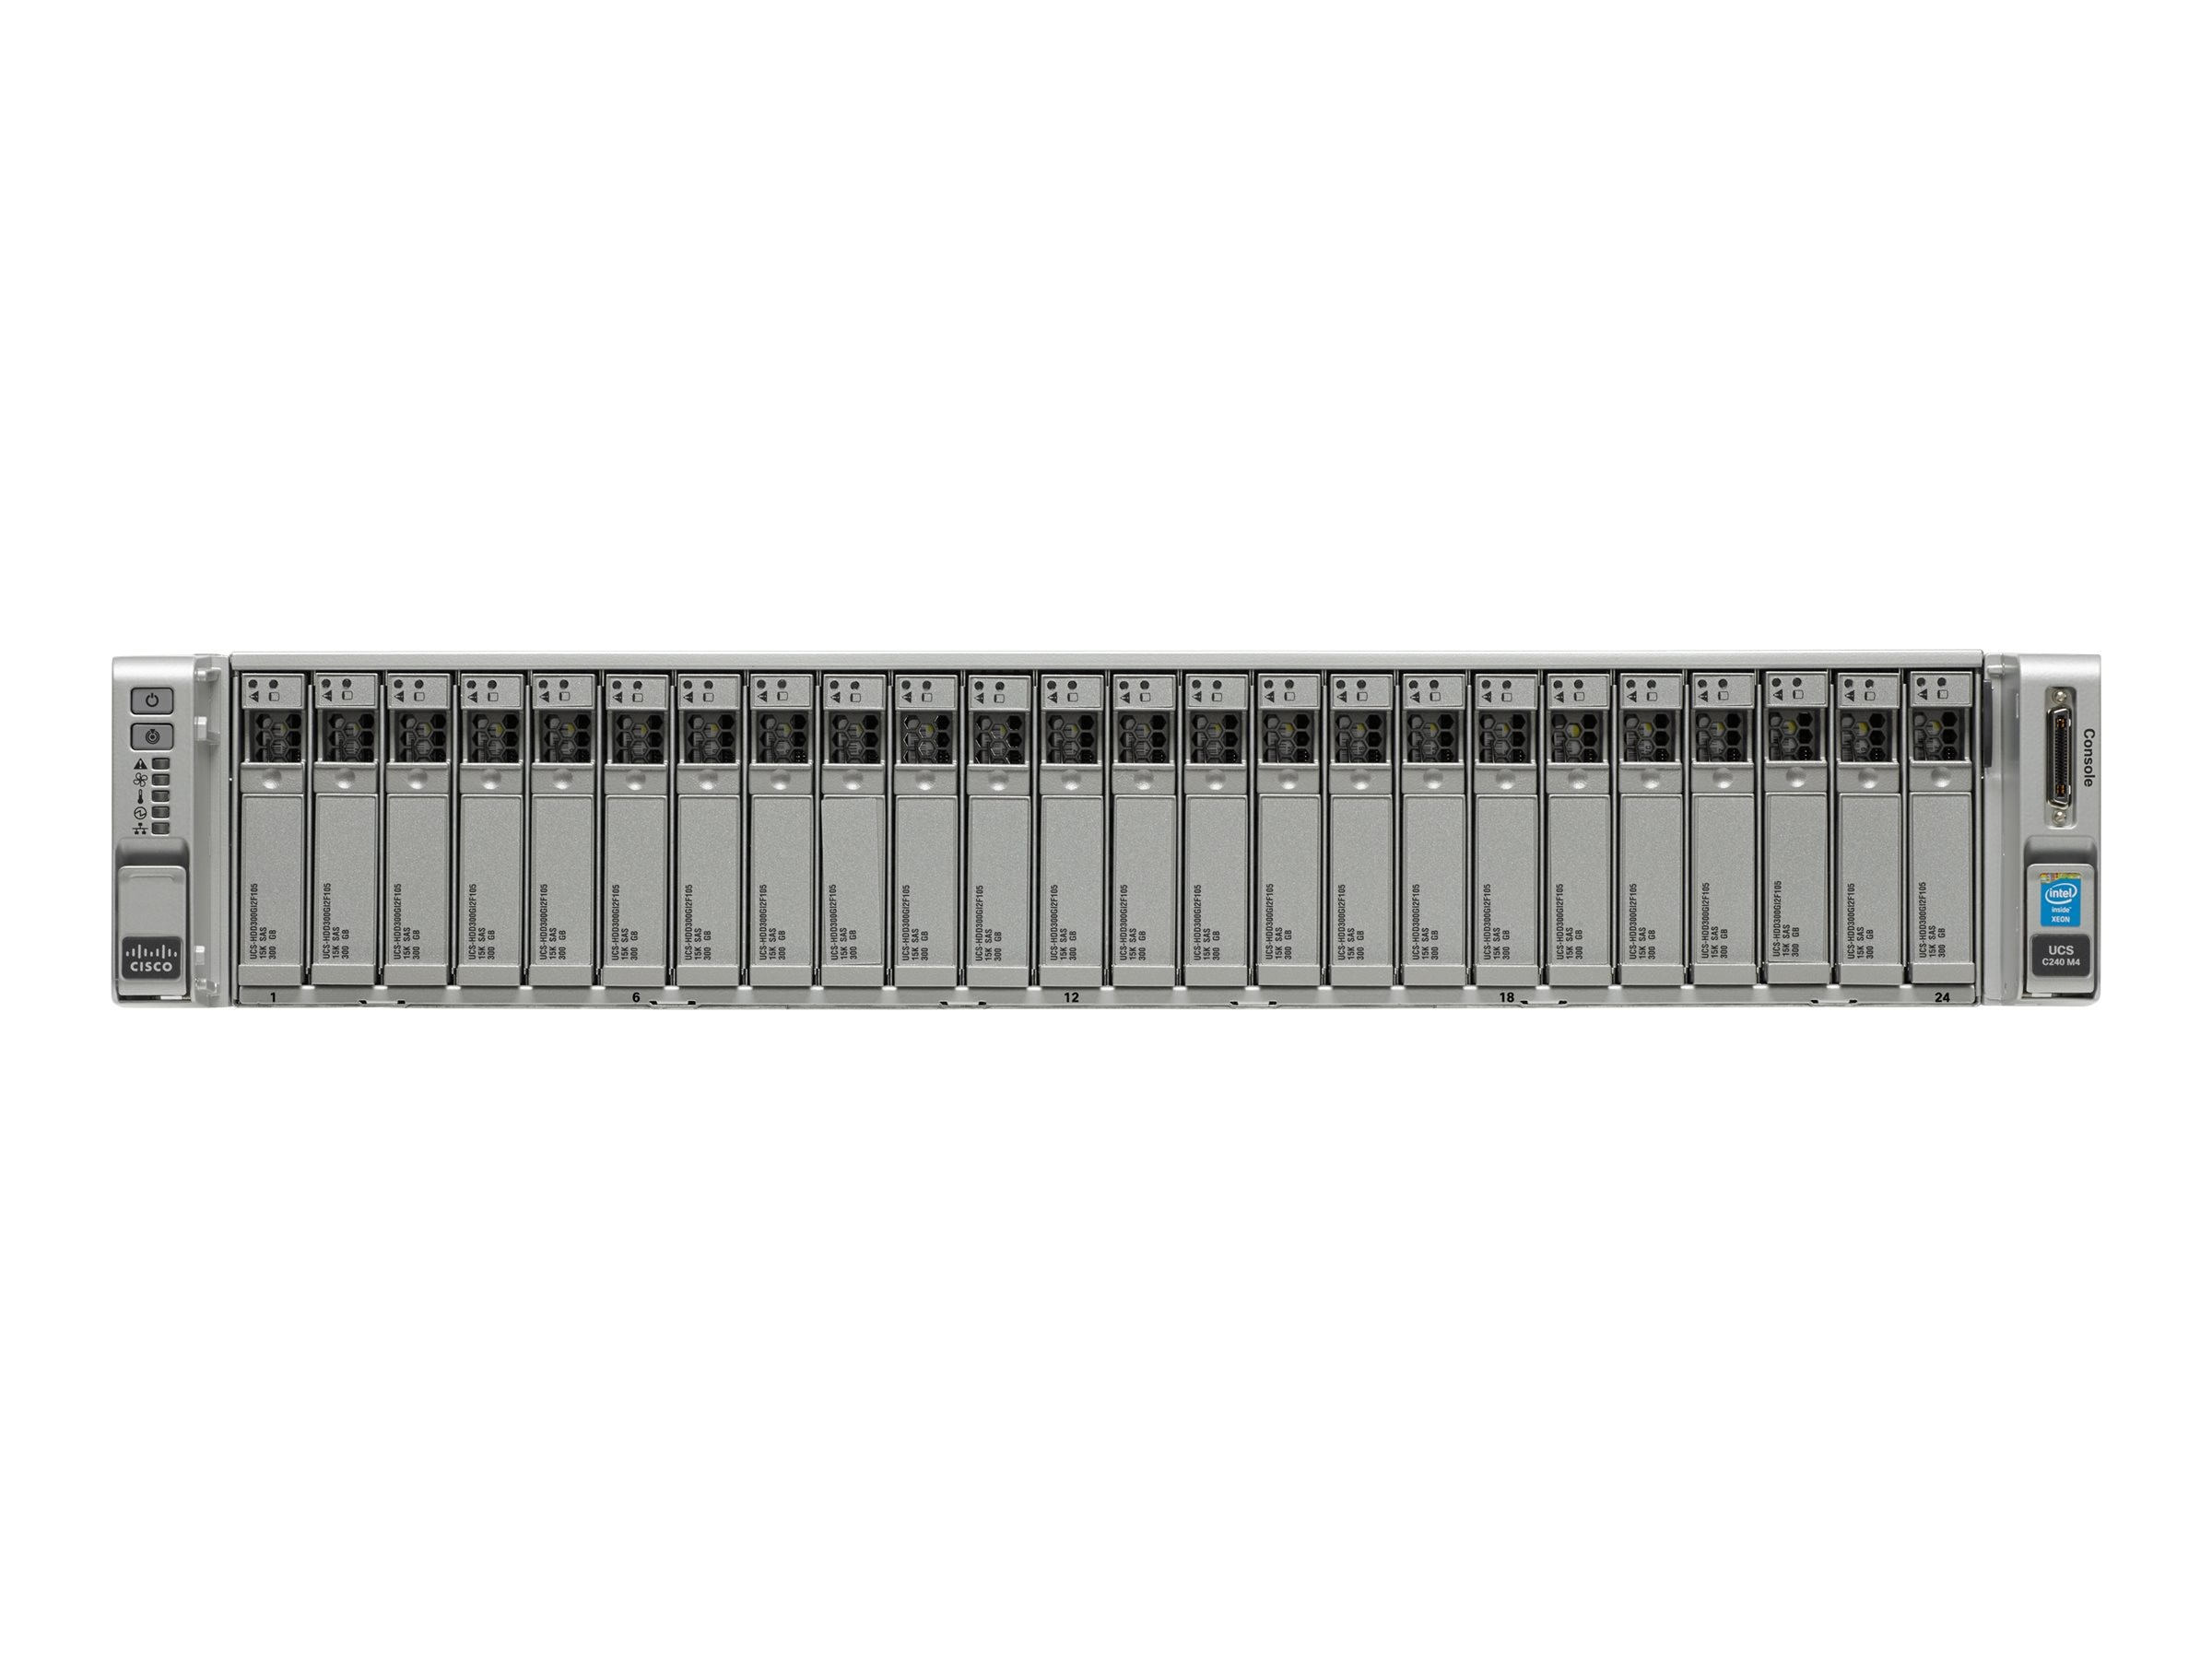 Cisco UCS-SPR-C240M4-BS2 Image 2